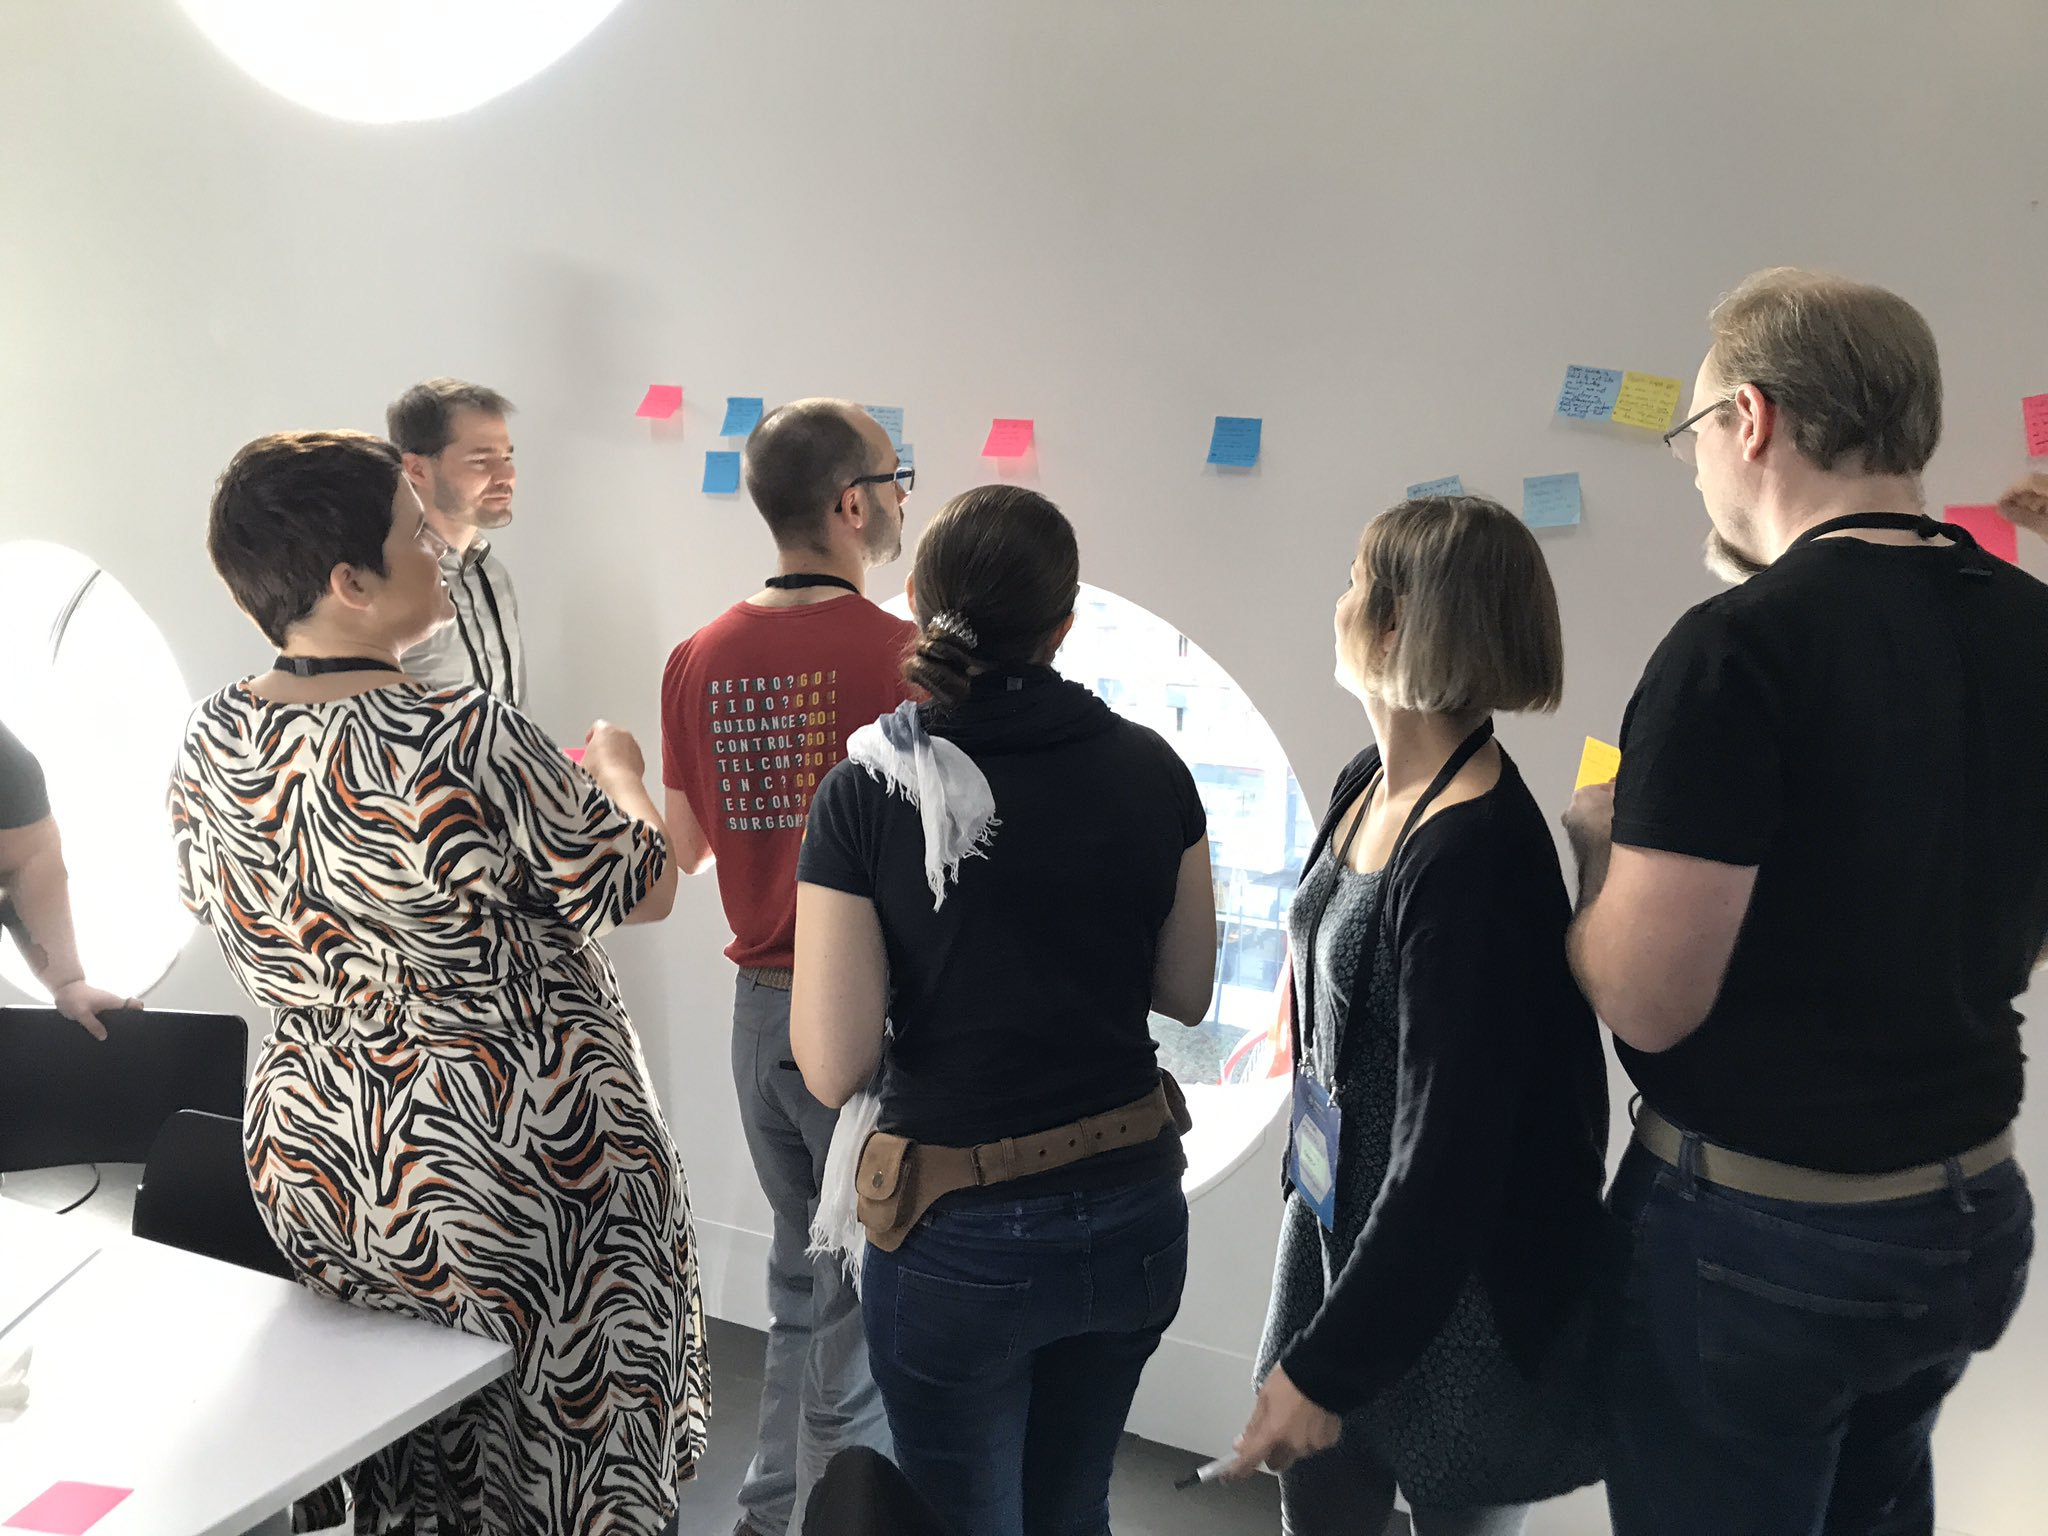 A group of people at #mozfest, clustered around a wall with post-it notes on